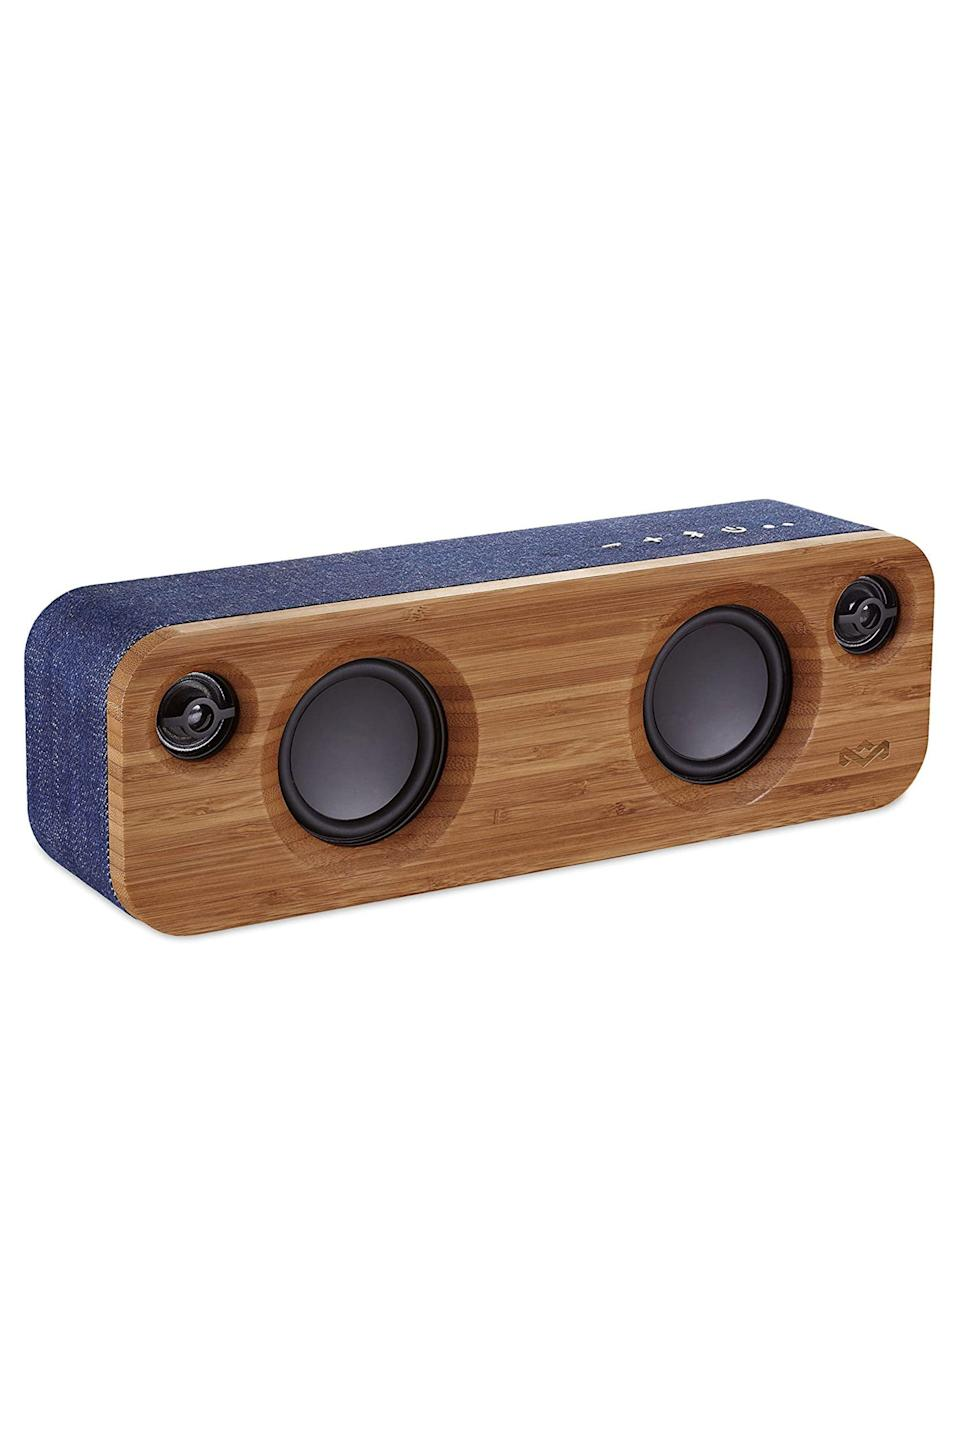 """<p><strong>House of Marley</strong></p><p>amazon.com</p><p><strong>$149.99</strong></p><p><a href=""""https://www.amazon.com/dp/B01DKGP5RI?tag=syn-yahoo-20&ascsubtag=%5Bartid%7C10051.g.13053688%5Bsrc%7Cyahoo-us"""" rel=""""nofollow noopener"""" target=""""_blank"""" data-ylk=""""slk:Shop Now"""" class=""""link rapid-noclick-resp"""">Shop Now</a></p><p>Made from bamboo with House of Marley's signature Rewind fabric (a blend of hemp, recycled bottles and organic cotton), these eco-friendly bluetooth speakers deliver equally impressive sound and style. As one reviewer wrote: """"I'm a music major and I use this to practice with orchestra backing... Sound quality is amazing across the board. You can hear every voice in the orchestra, but is not too bass heavy for Drake and Post Malone.""""</p>"""